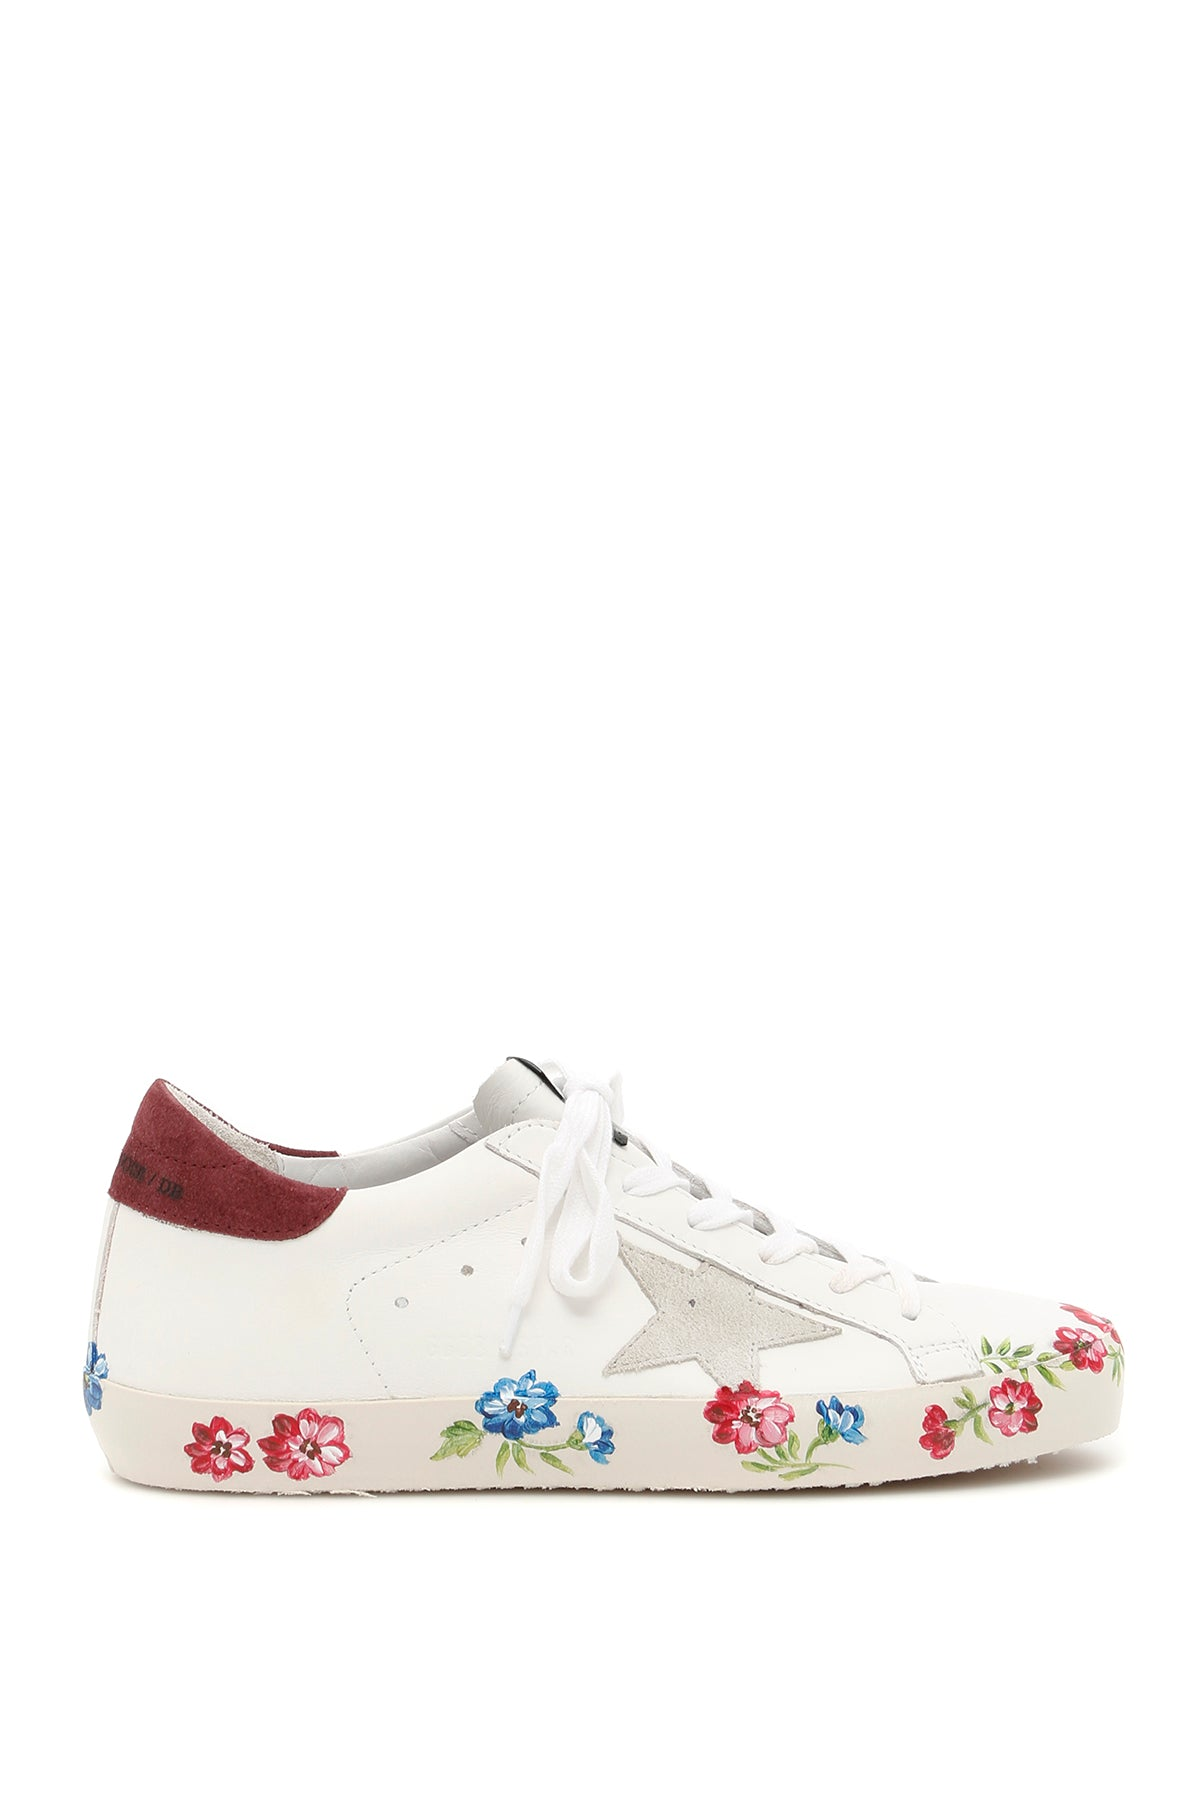 GOLDEN GOOSE DELUXE BRAND SUPERSTAR FLOWER SNEAKERS